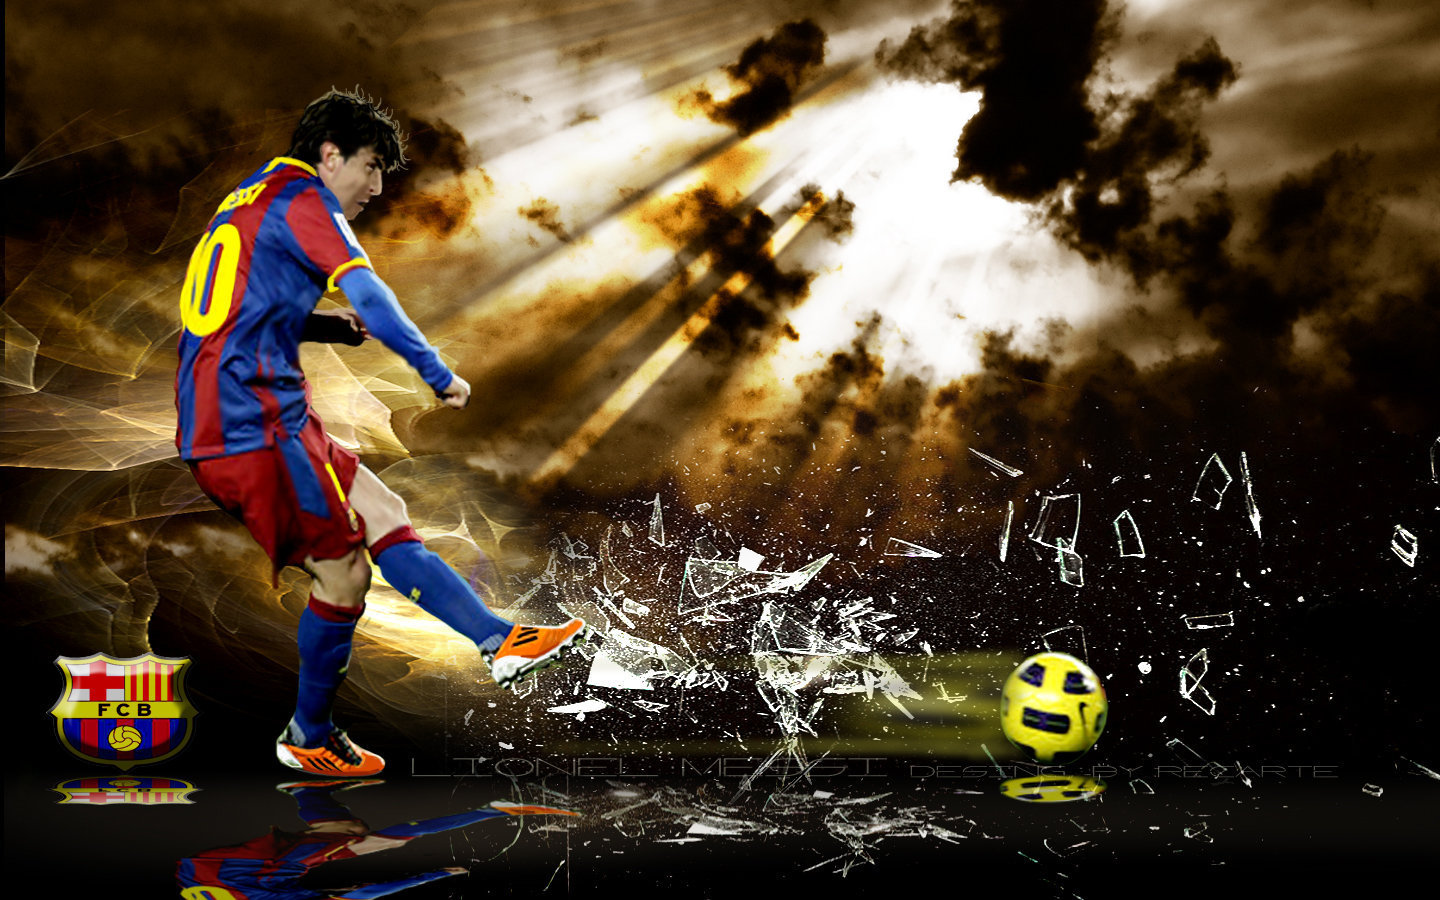 Messi 5803 1440x900 px hdwallsource messi 5803 voltagebd Choice Image